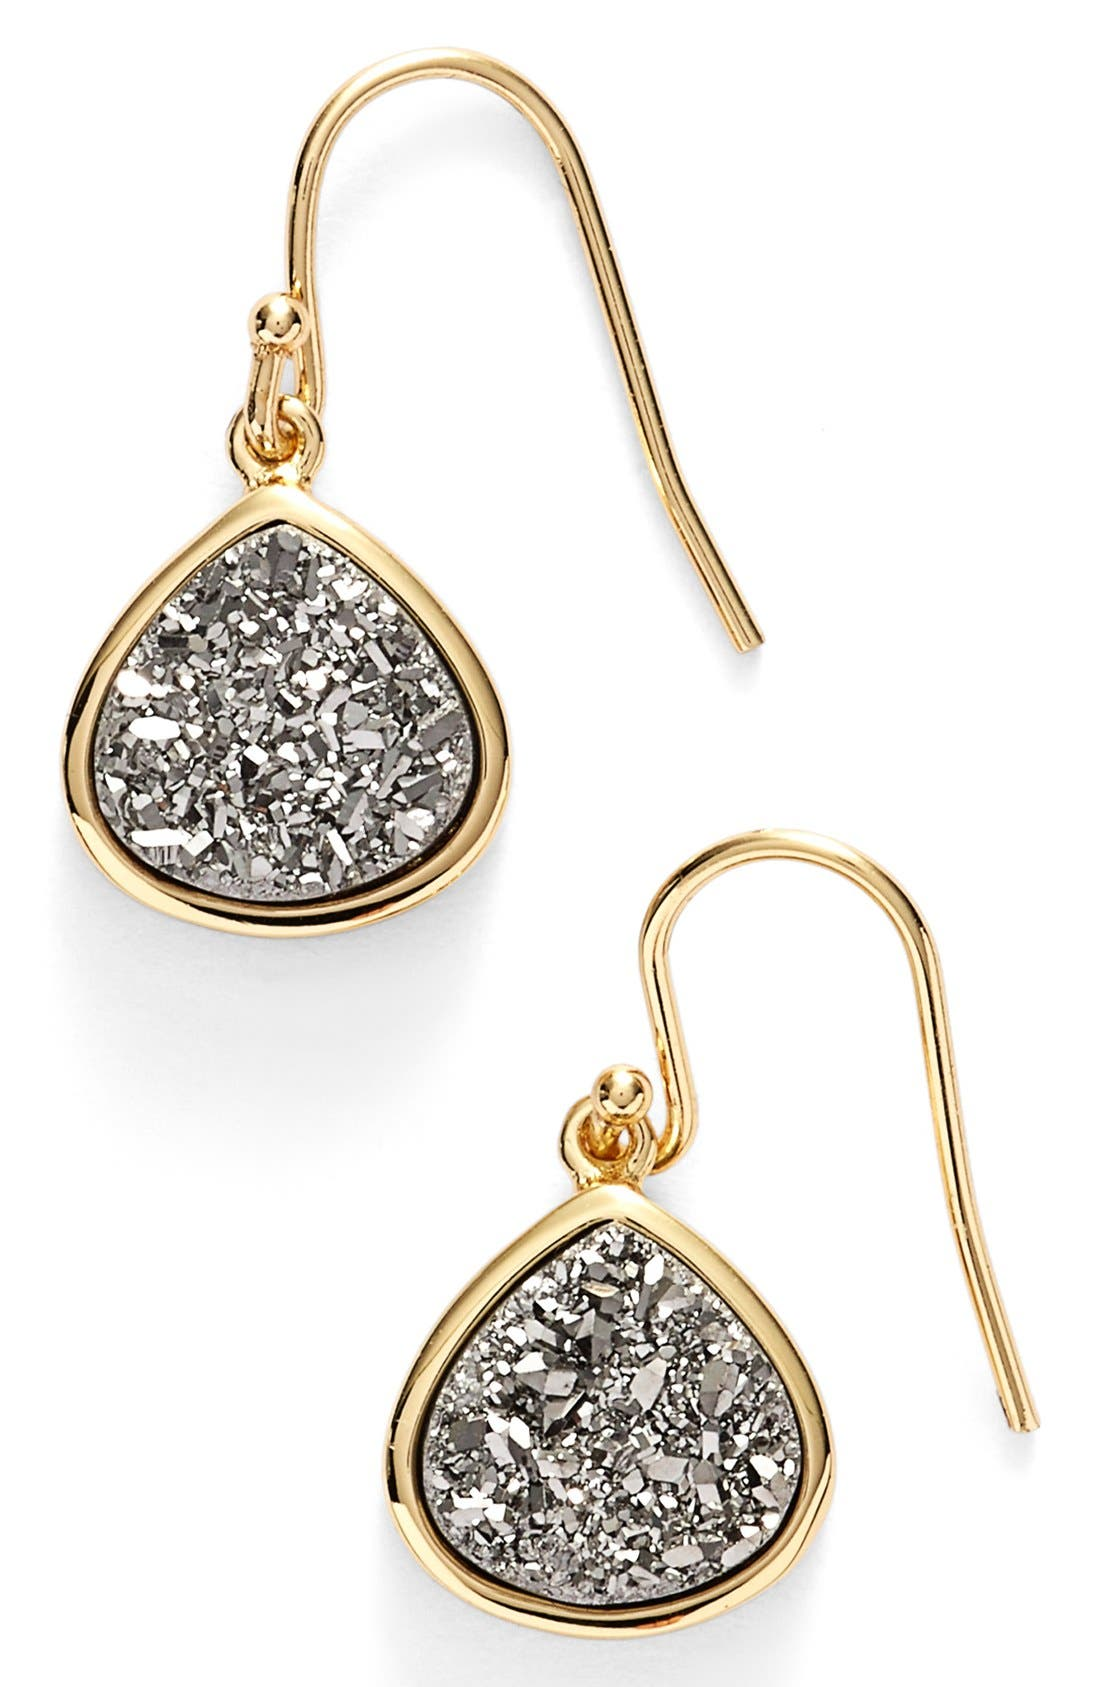 SONYARENEE,                             Sonya Renee Drusy Teardrop Earrings,                             Main thumbnail 1, color,                             040